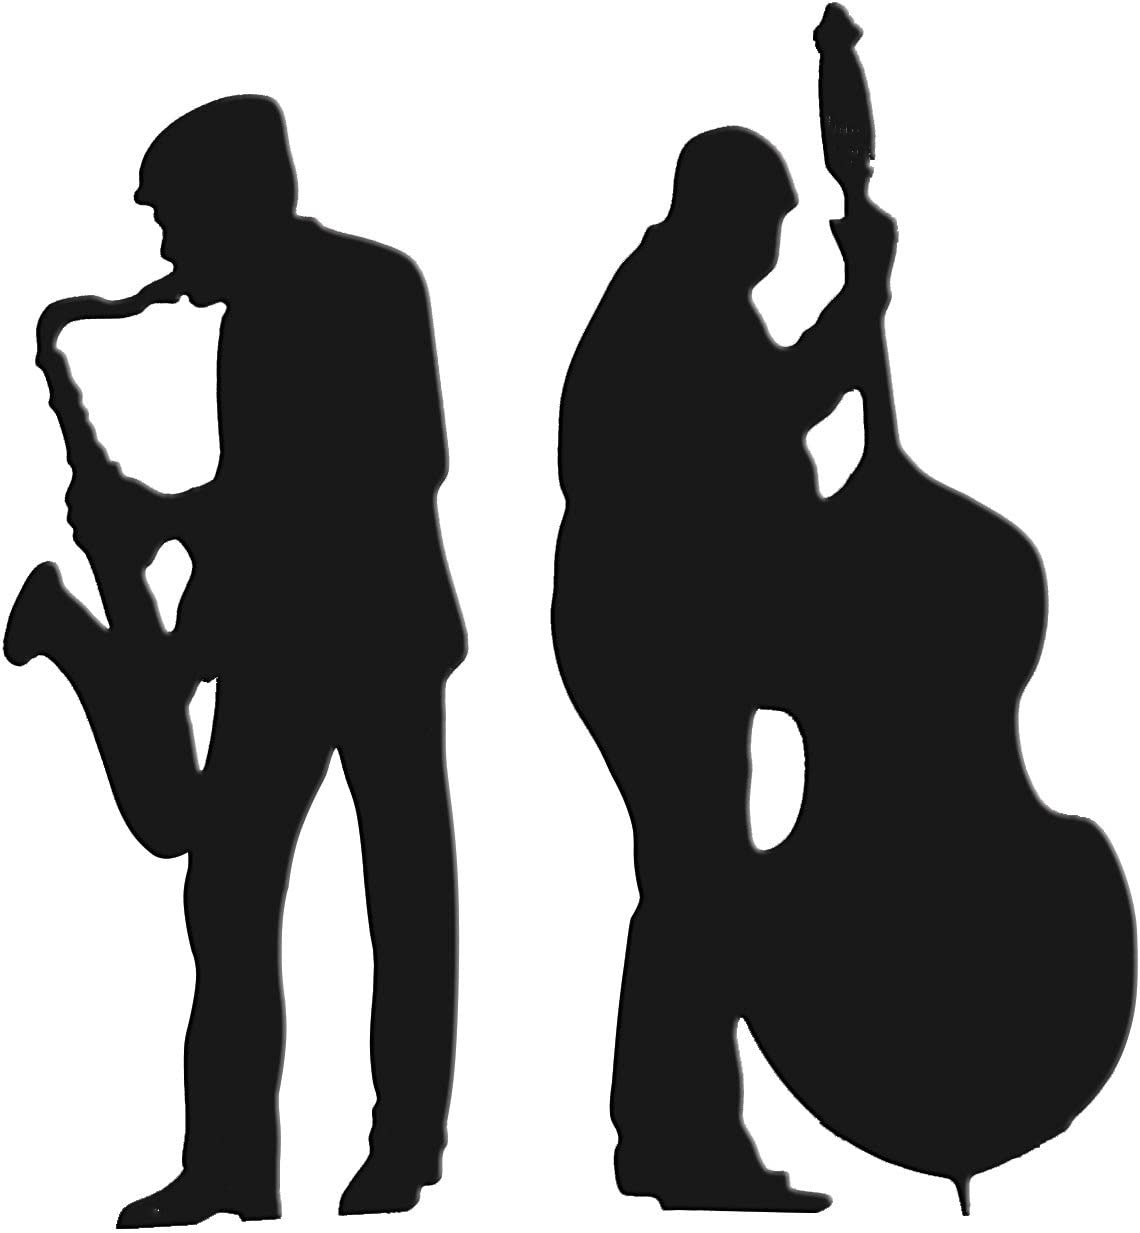 Anderson's Black Sax and Bass Cardboard Size Max 83% OFF Standu online shopping Players Life